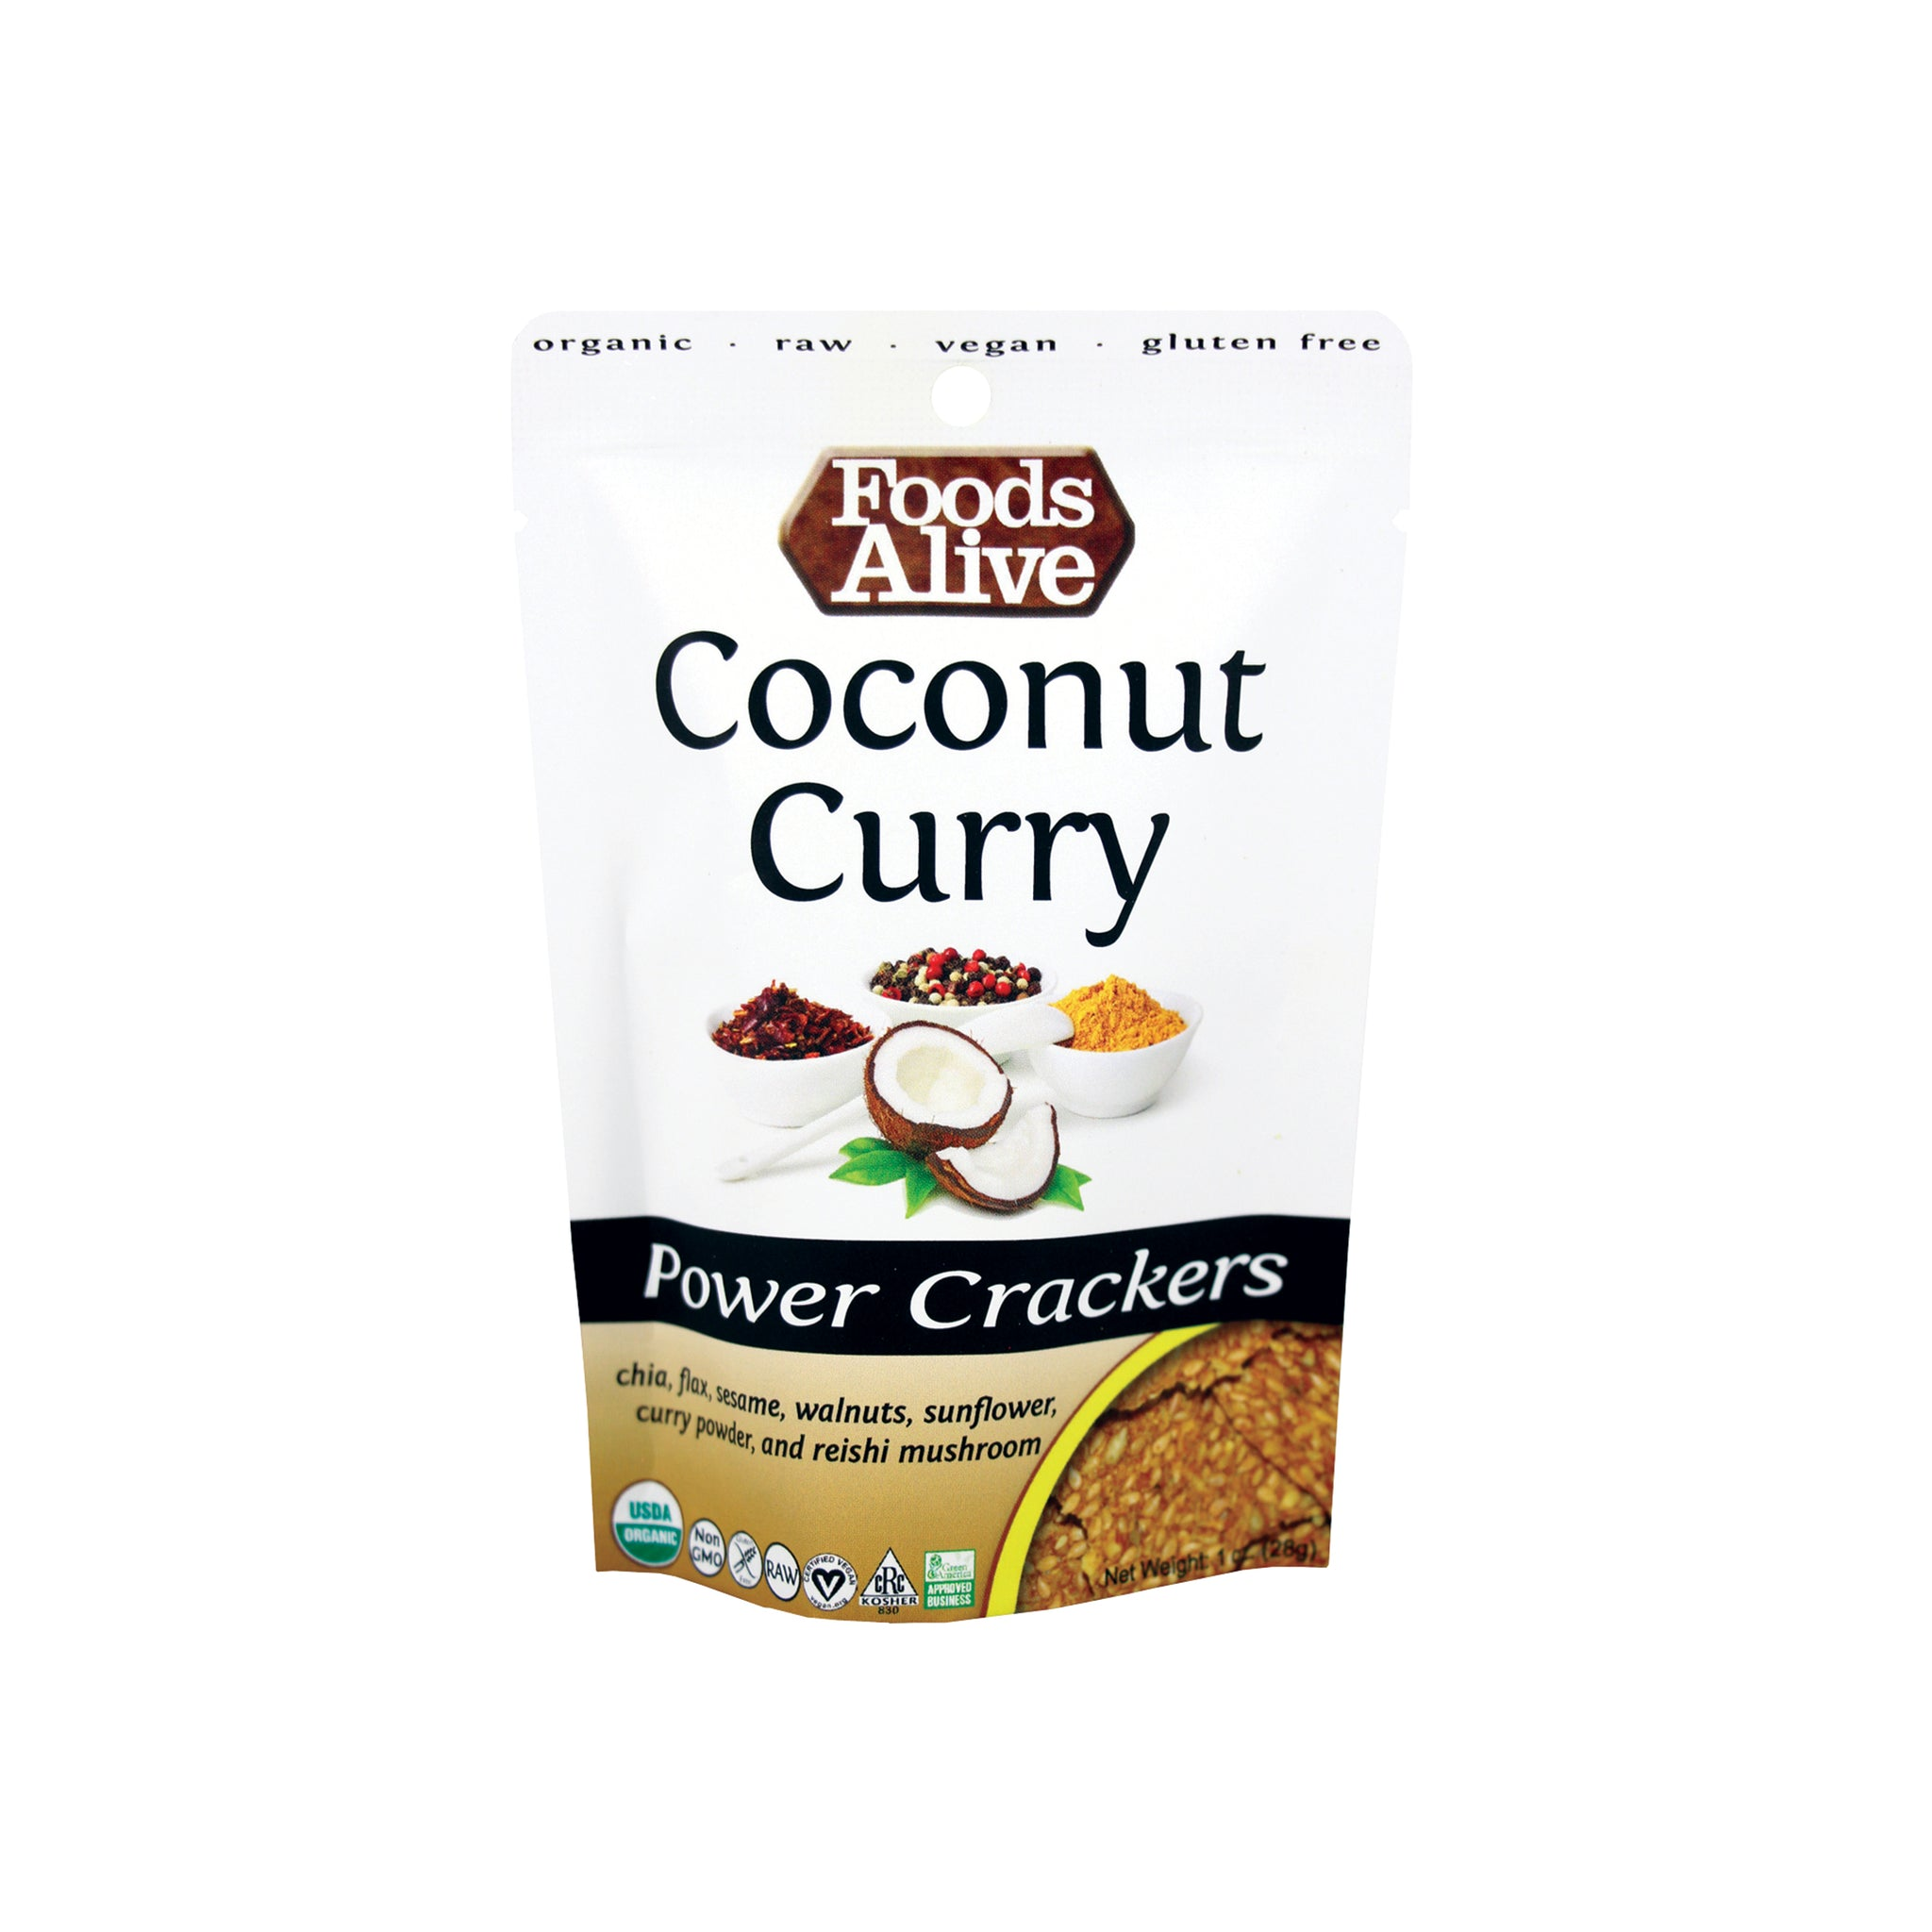 Foods Alive - Organic Power Crackers - Coconut Curry - 1 oz